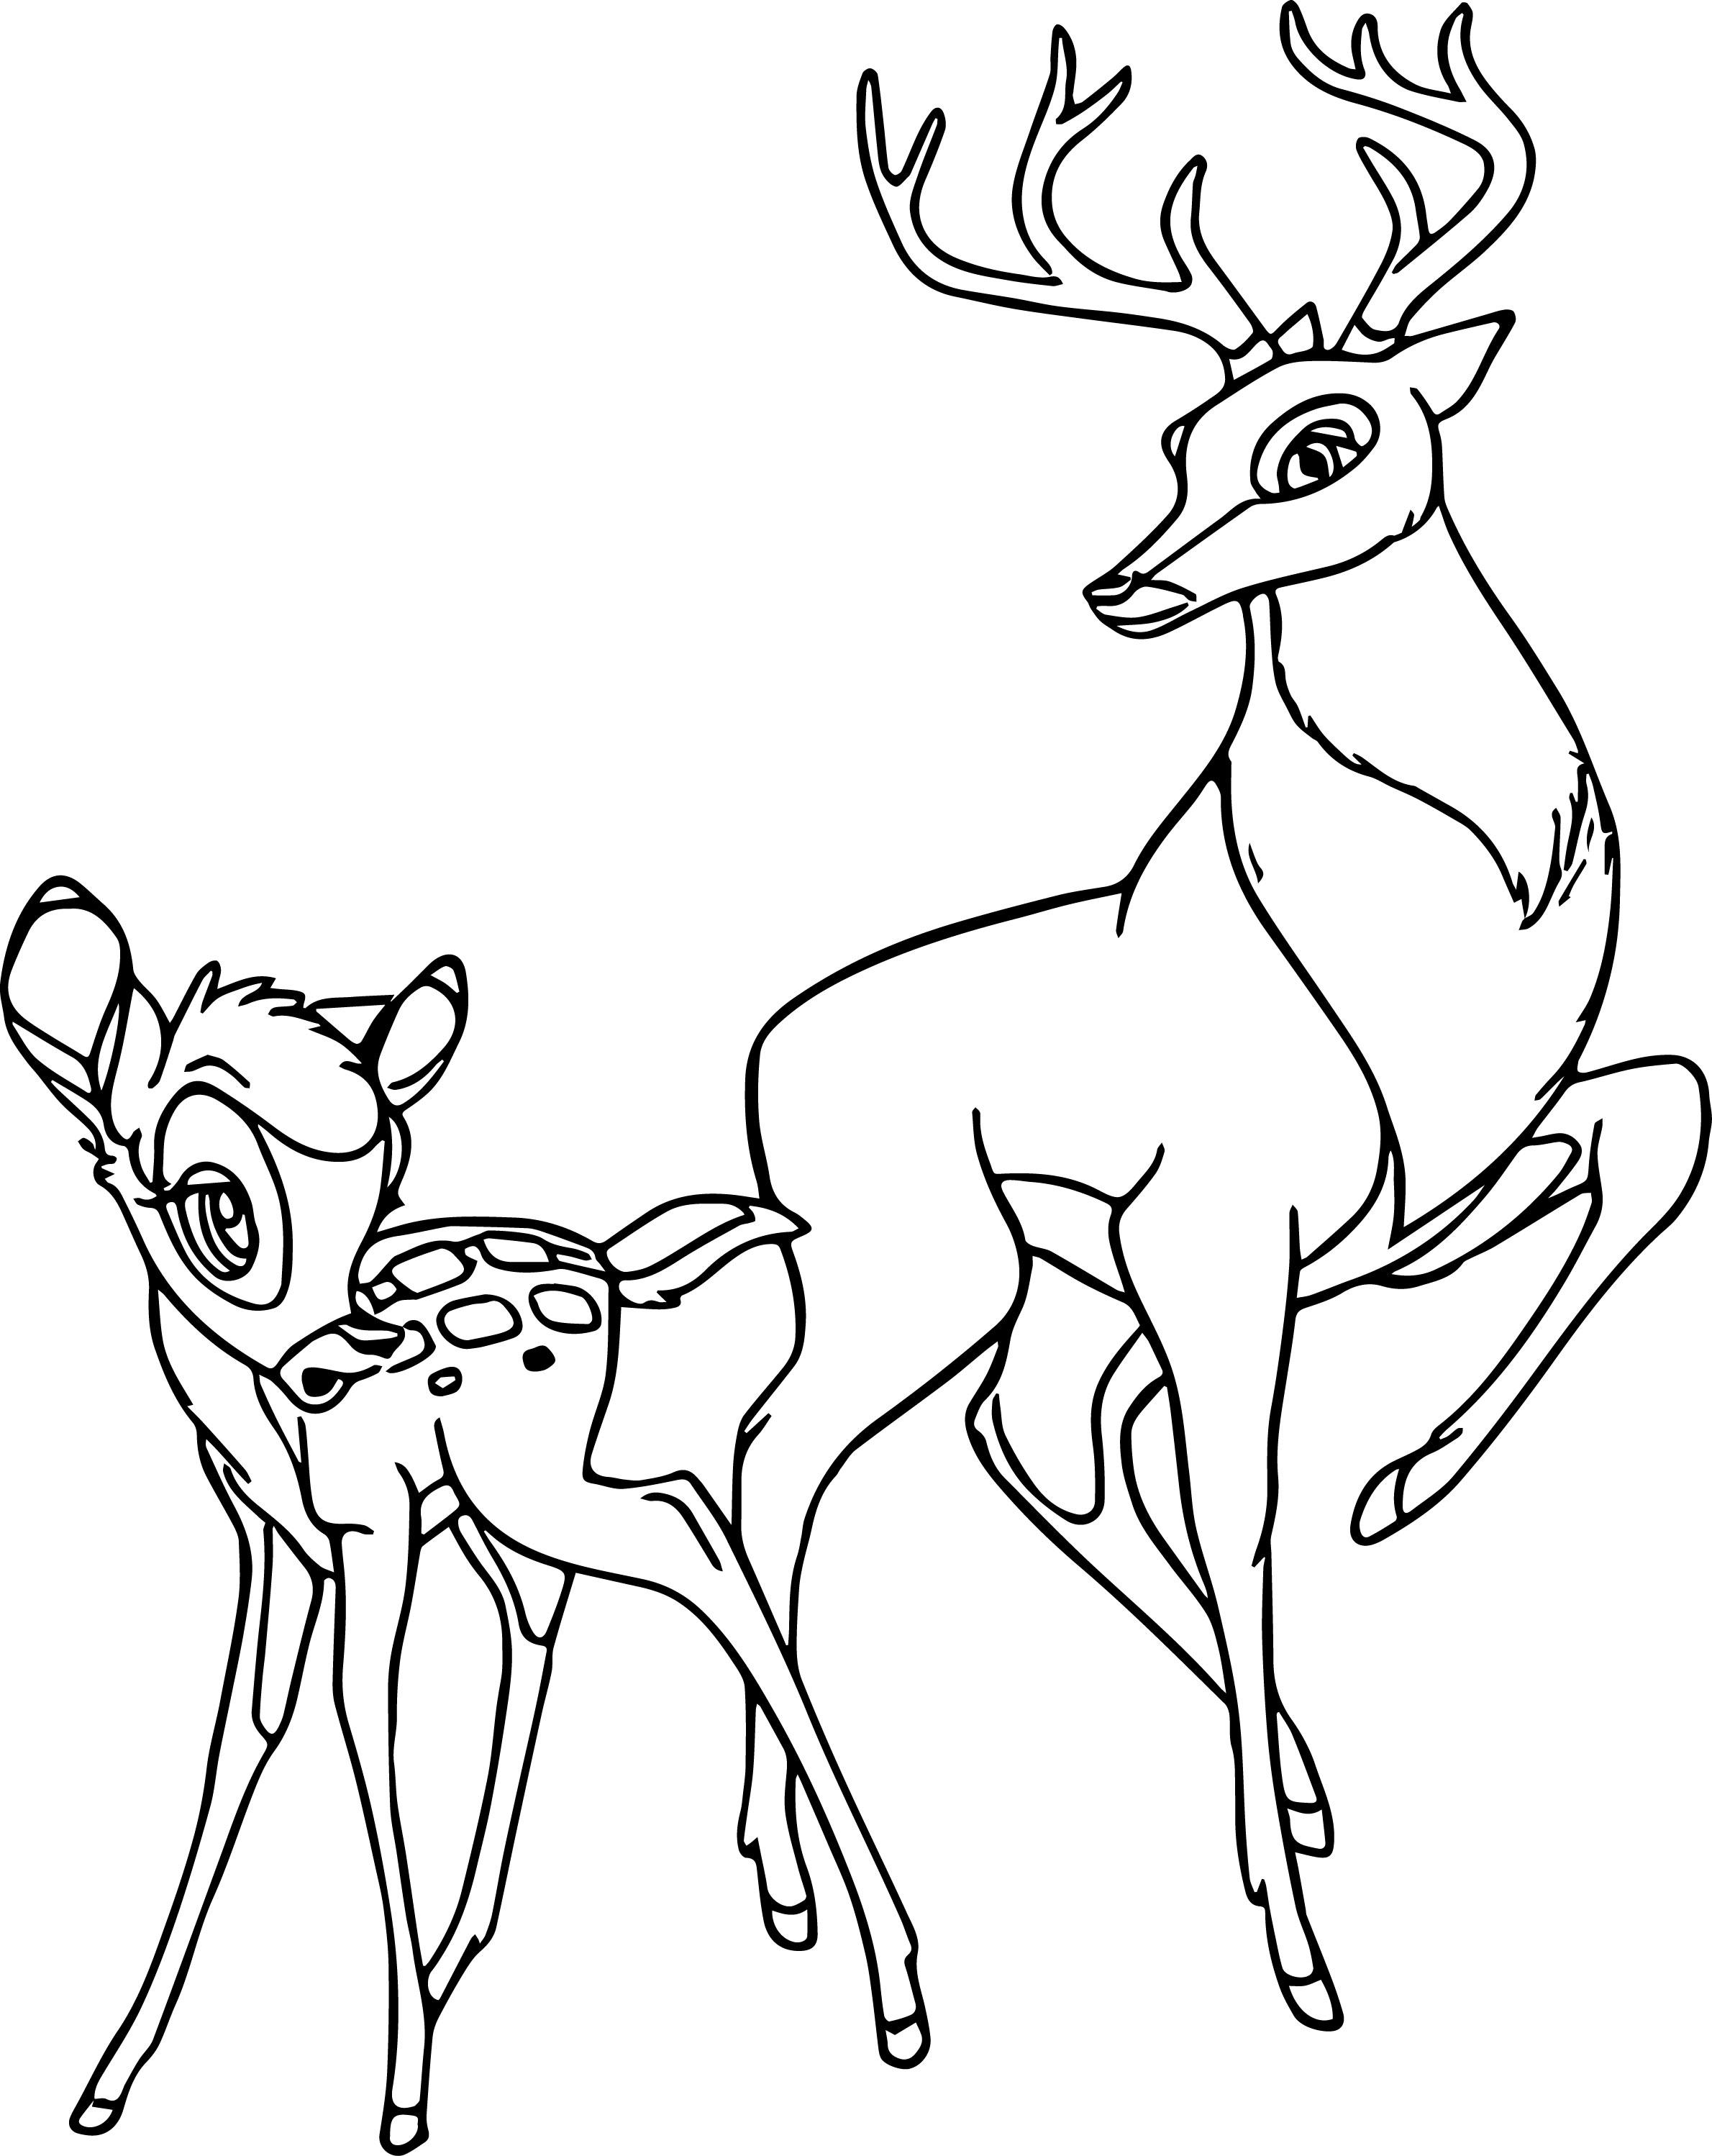 bambi and the great prince of the forest coloring page